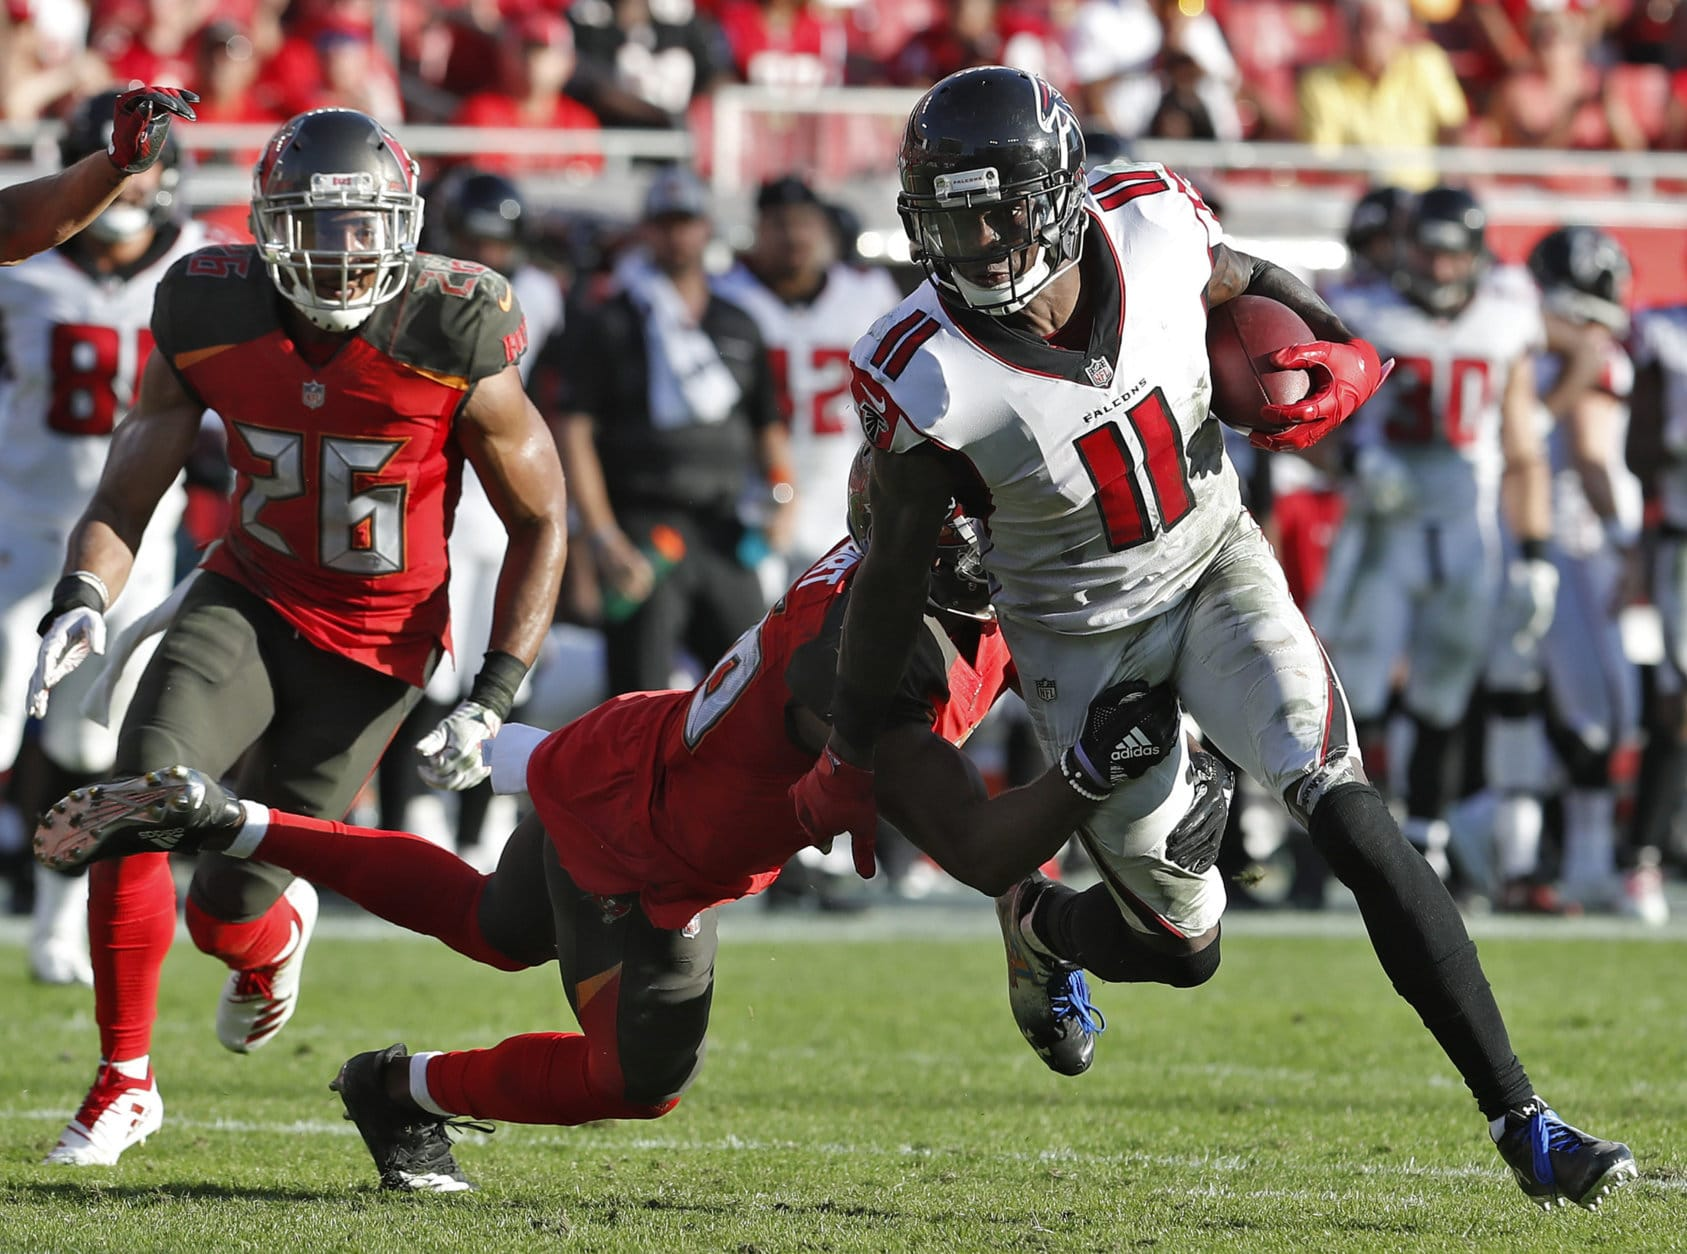 Atlanta Falcons wide receiver Julio Jones (11) is stopped by Tampa Bay Buccaneers cornerback M.J. Stewart (36) and defensive back Andrew Adams (26) after a reception during the second half of an NFL football game Sunday, Dec. 30, 2018, in Tampa, Fla. (AP Photo/Mark LoMoglio)